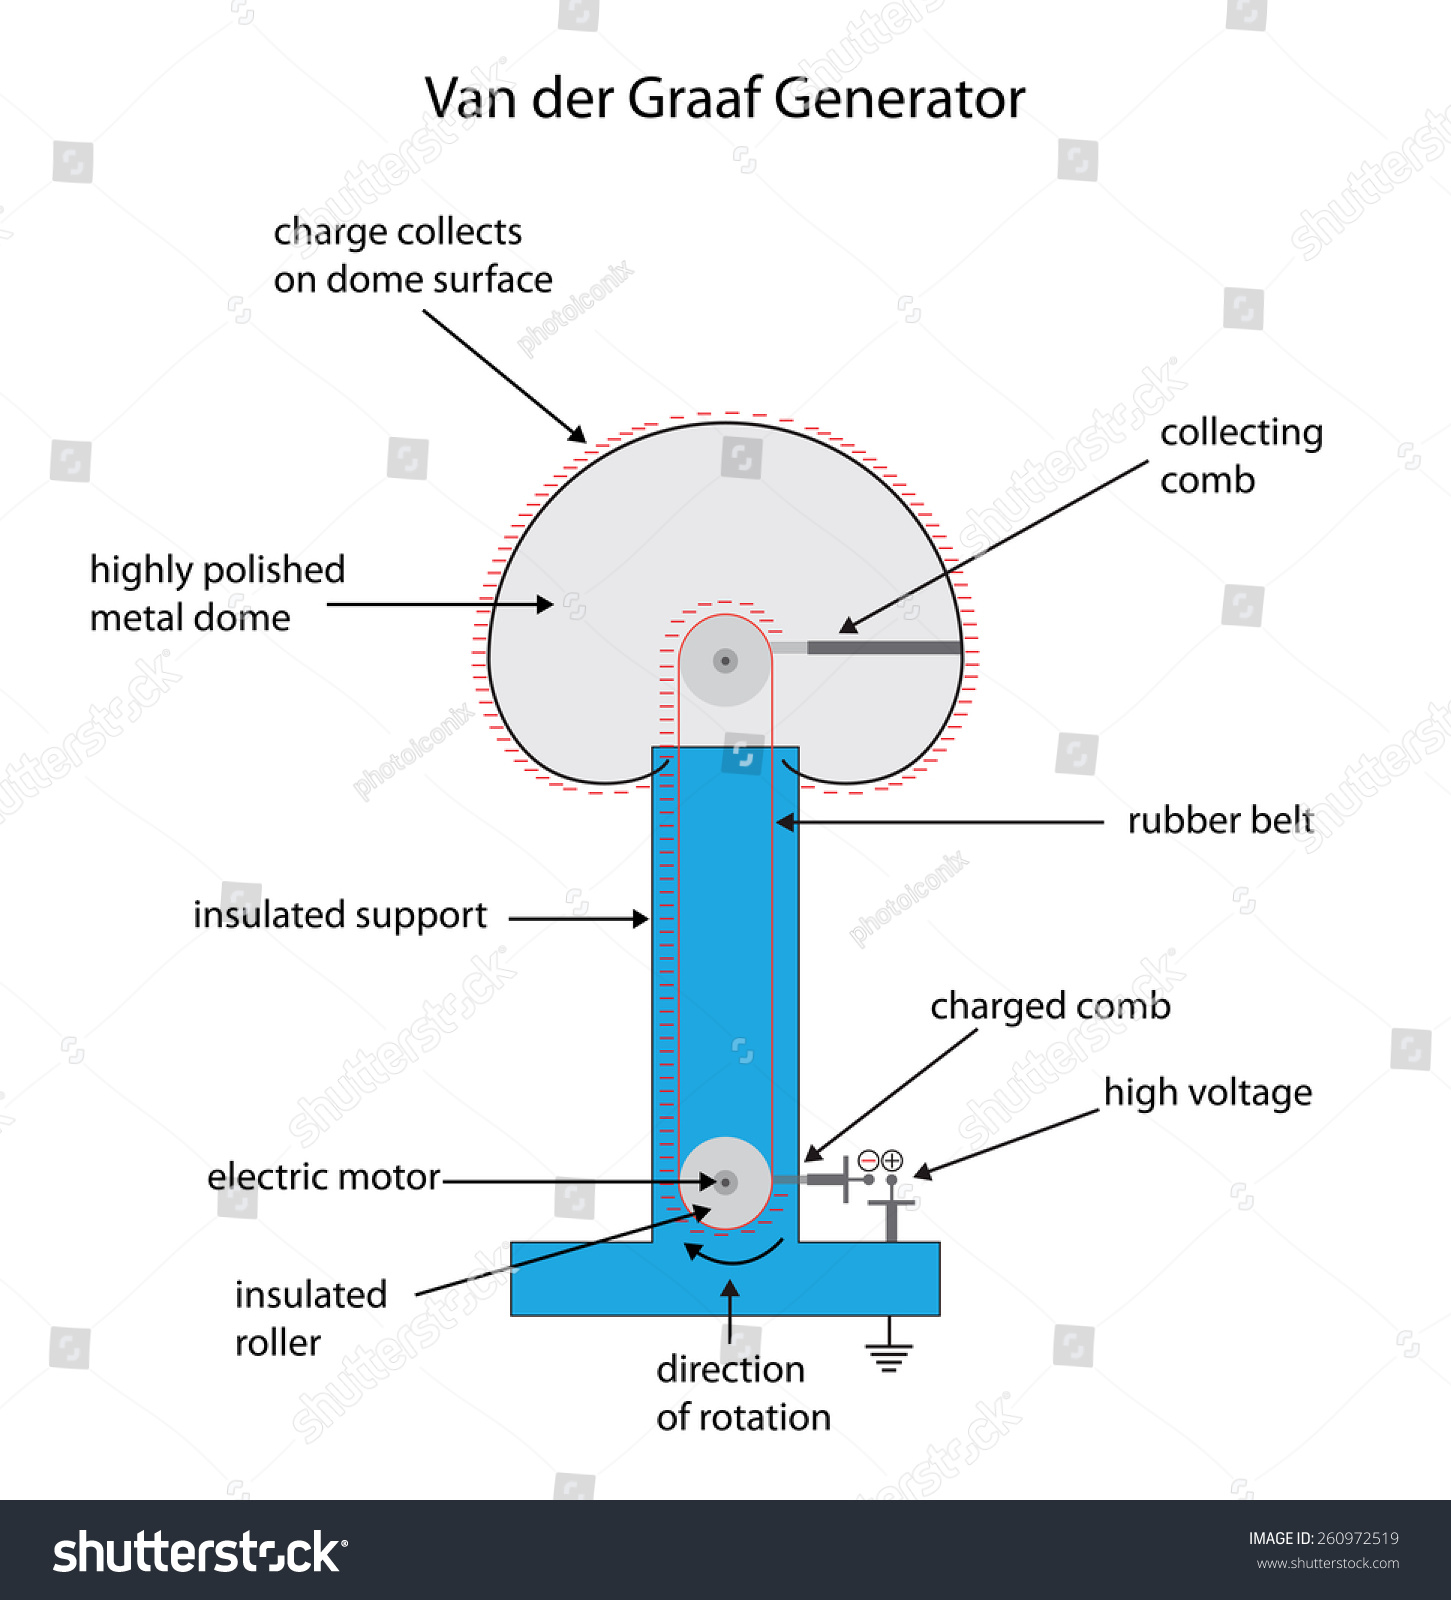 Labeled Diagram Van Der Graaf Generator Stock Vector Royalty Free 260972519